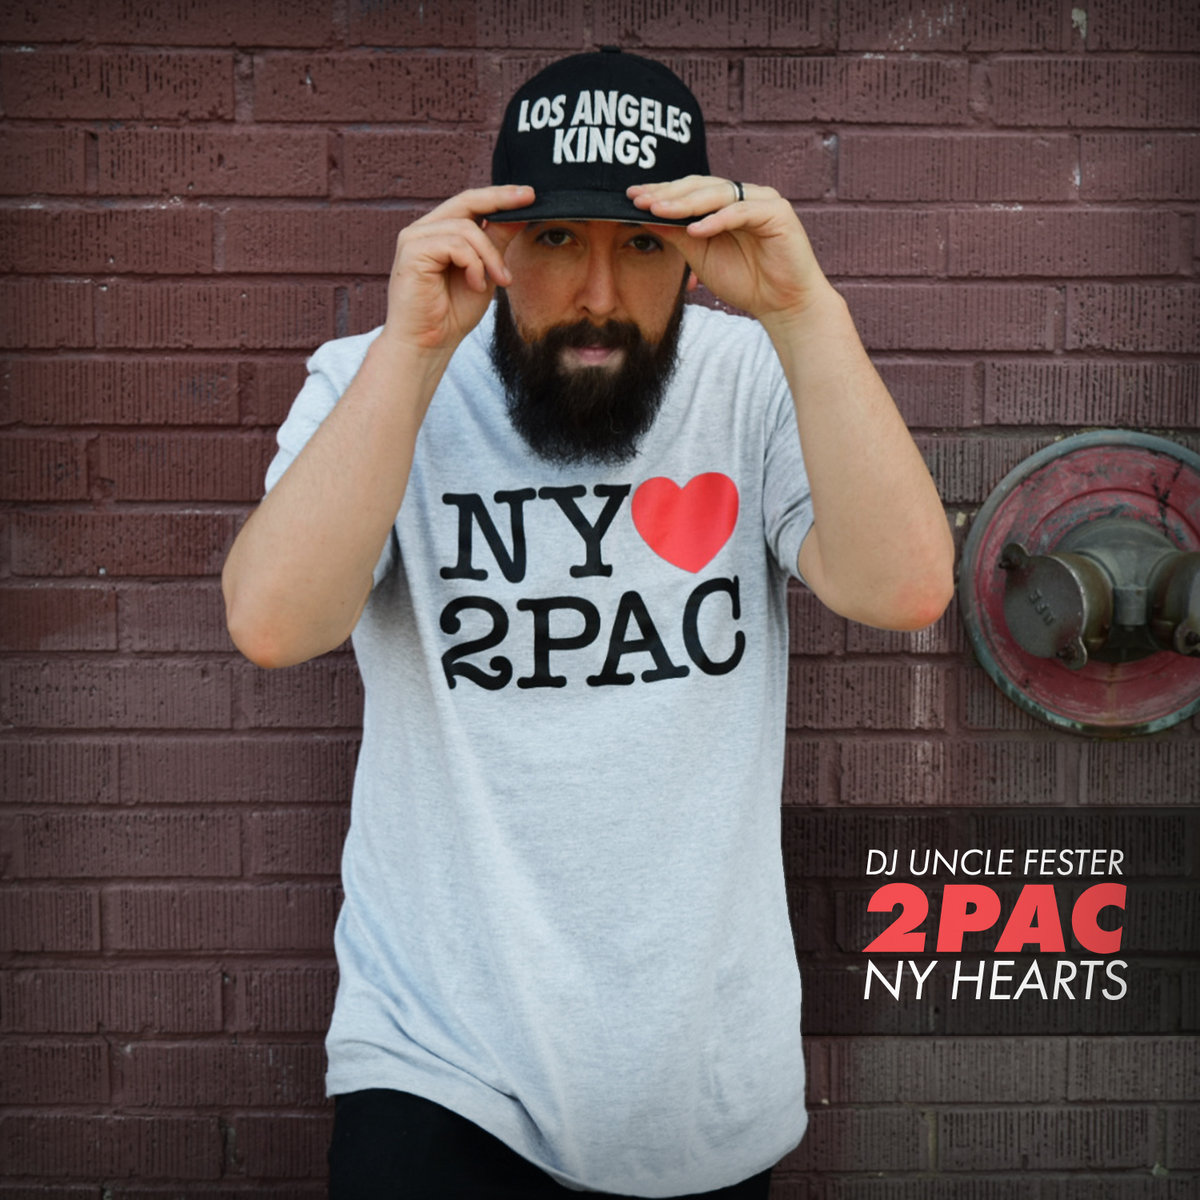 2PAC - NY Hearts   DJ Uncle Fester